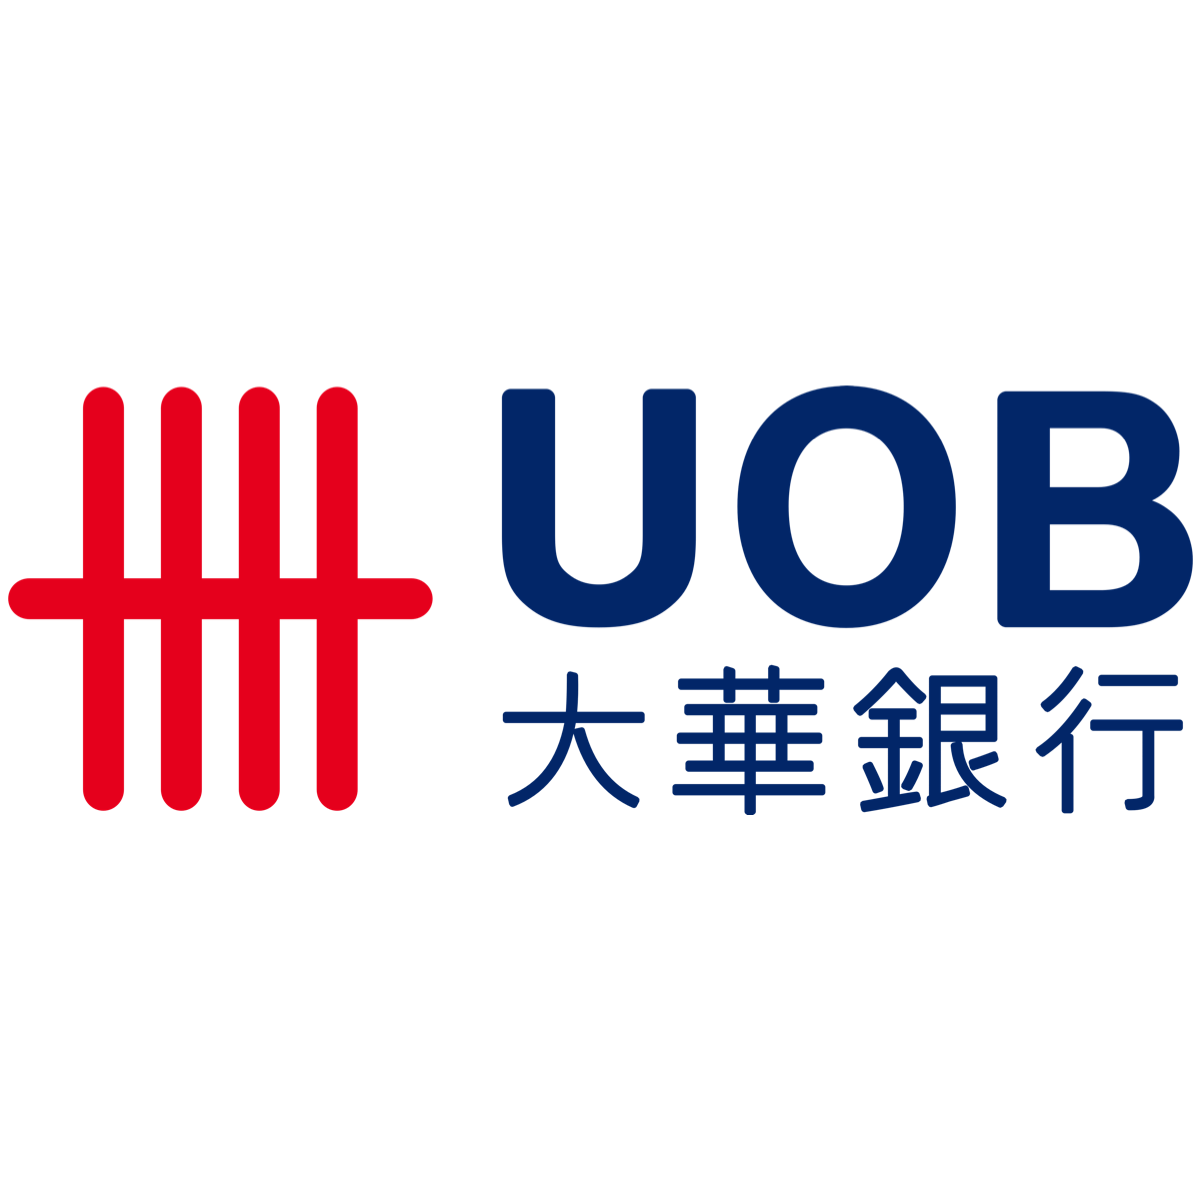 UOB - OCBC Investment Research 2018-08-06: Good Company, Bad Trade Situation